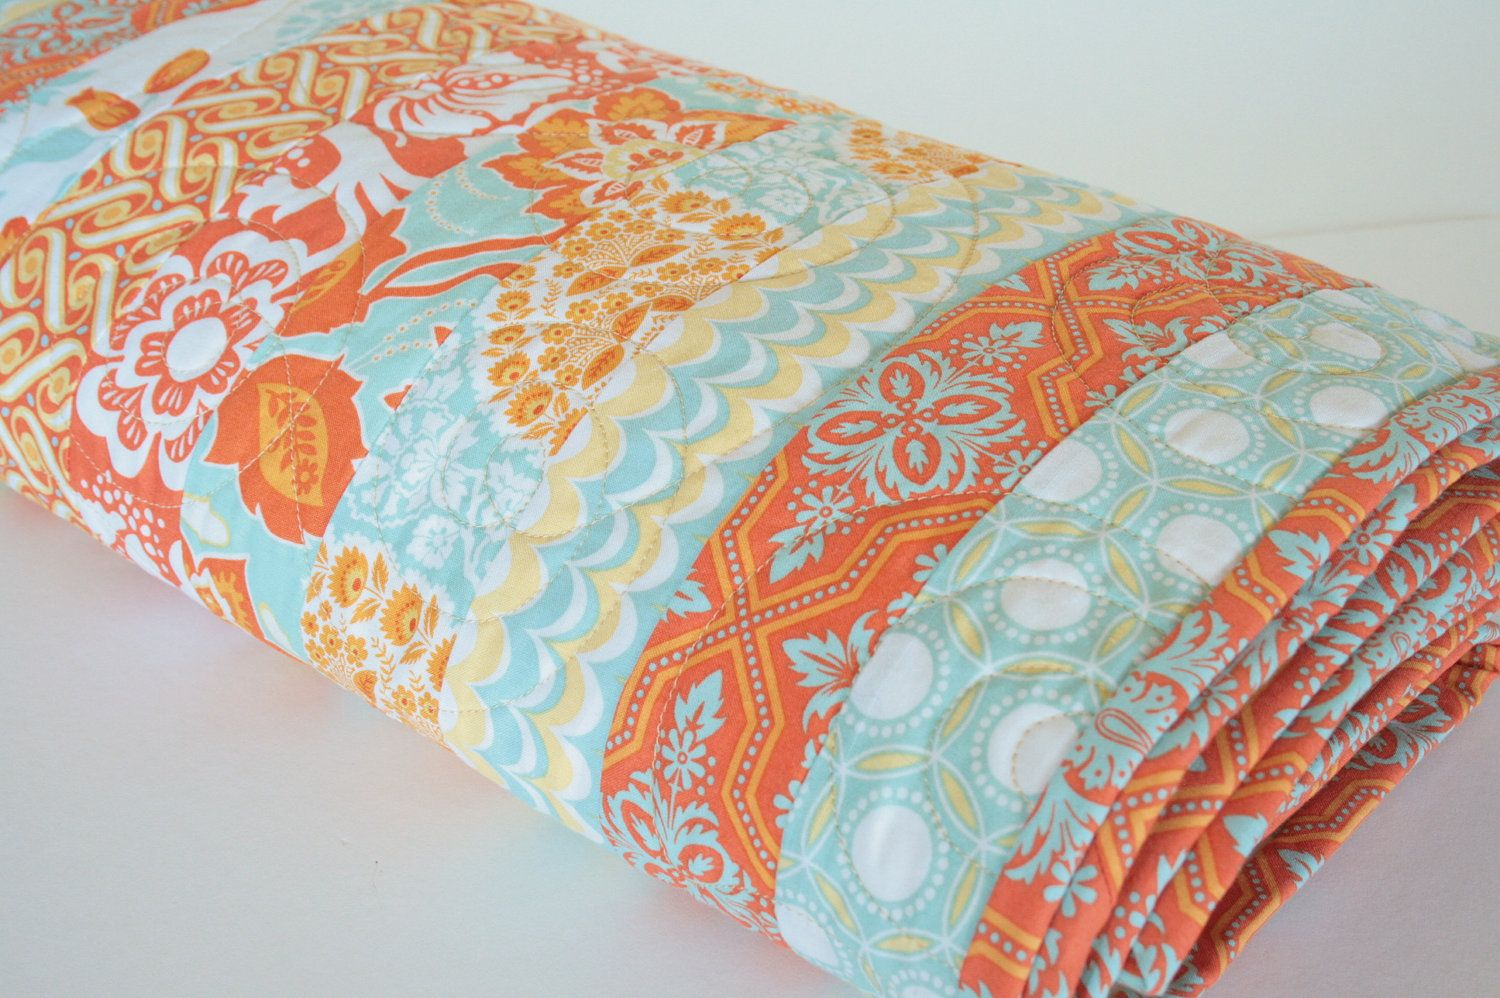 Delightful Modern Handmade Bed Quilt, Quilted Coverlet, Heirloom Quilt, Bedroom Decor  In Orange, Aqua And Yellow